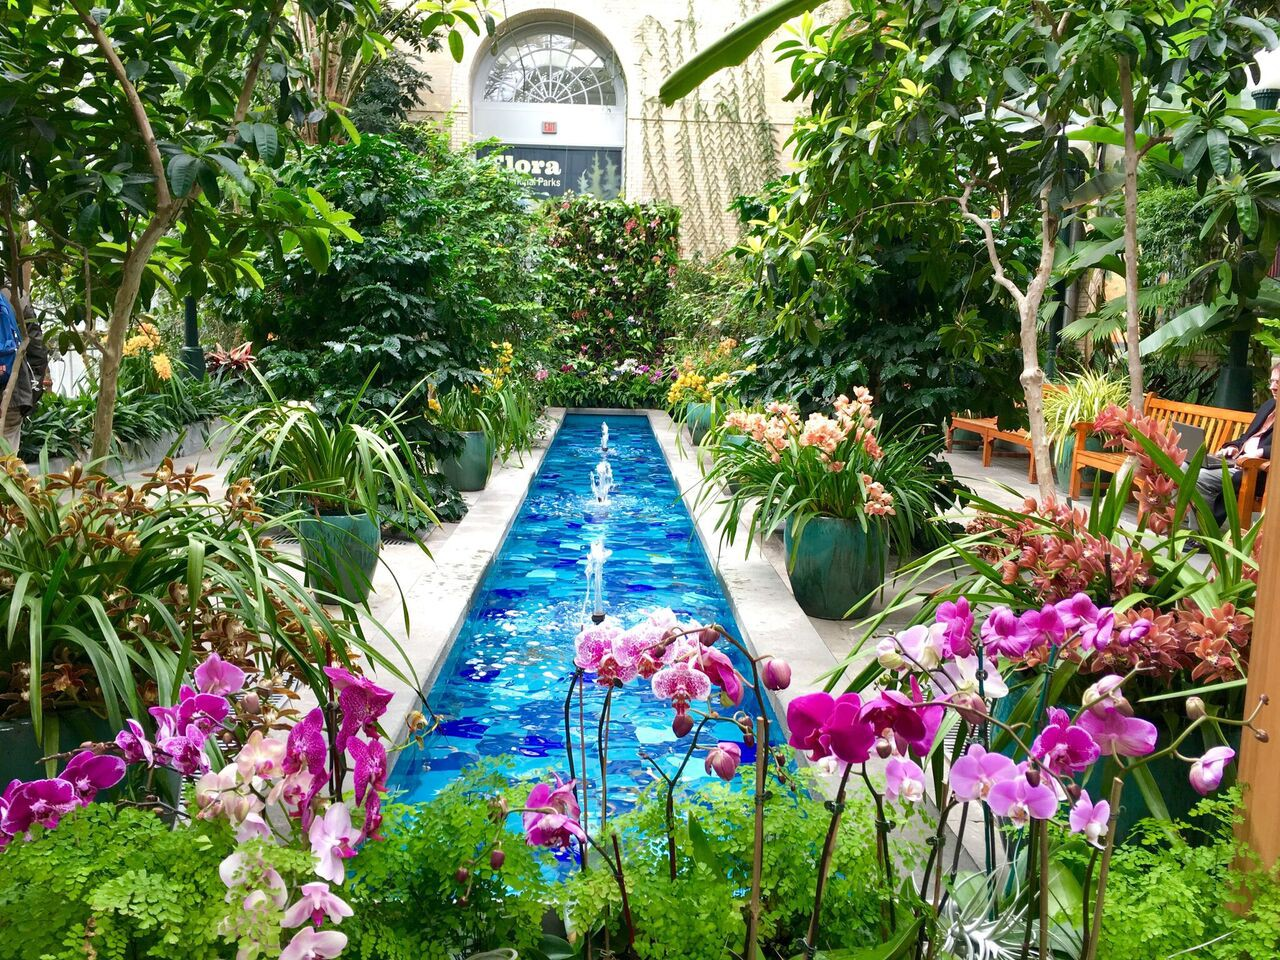 The Most Beautiful Public Gardens In The United States